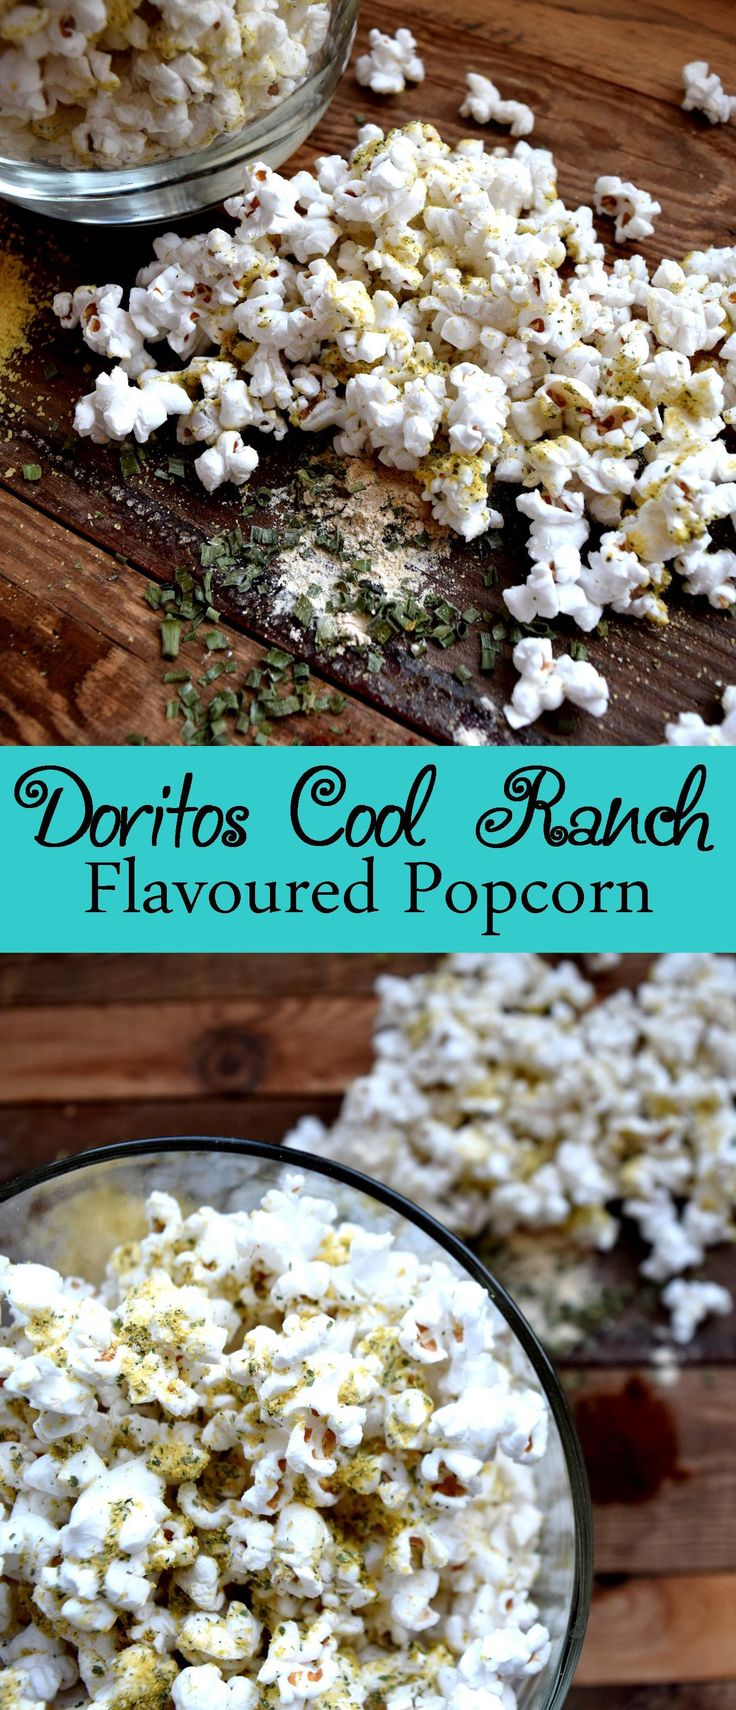 Doritos Cool Ranch Flavoured Popcorn